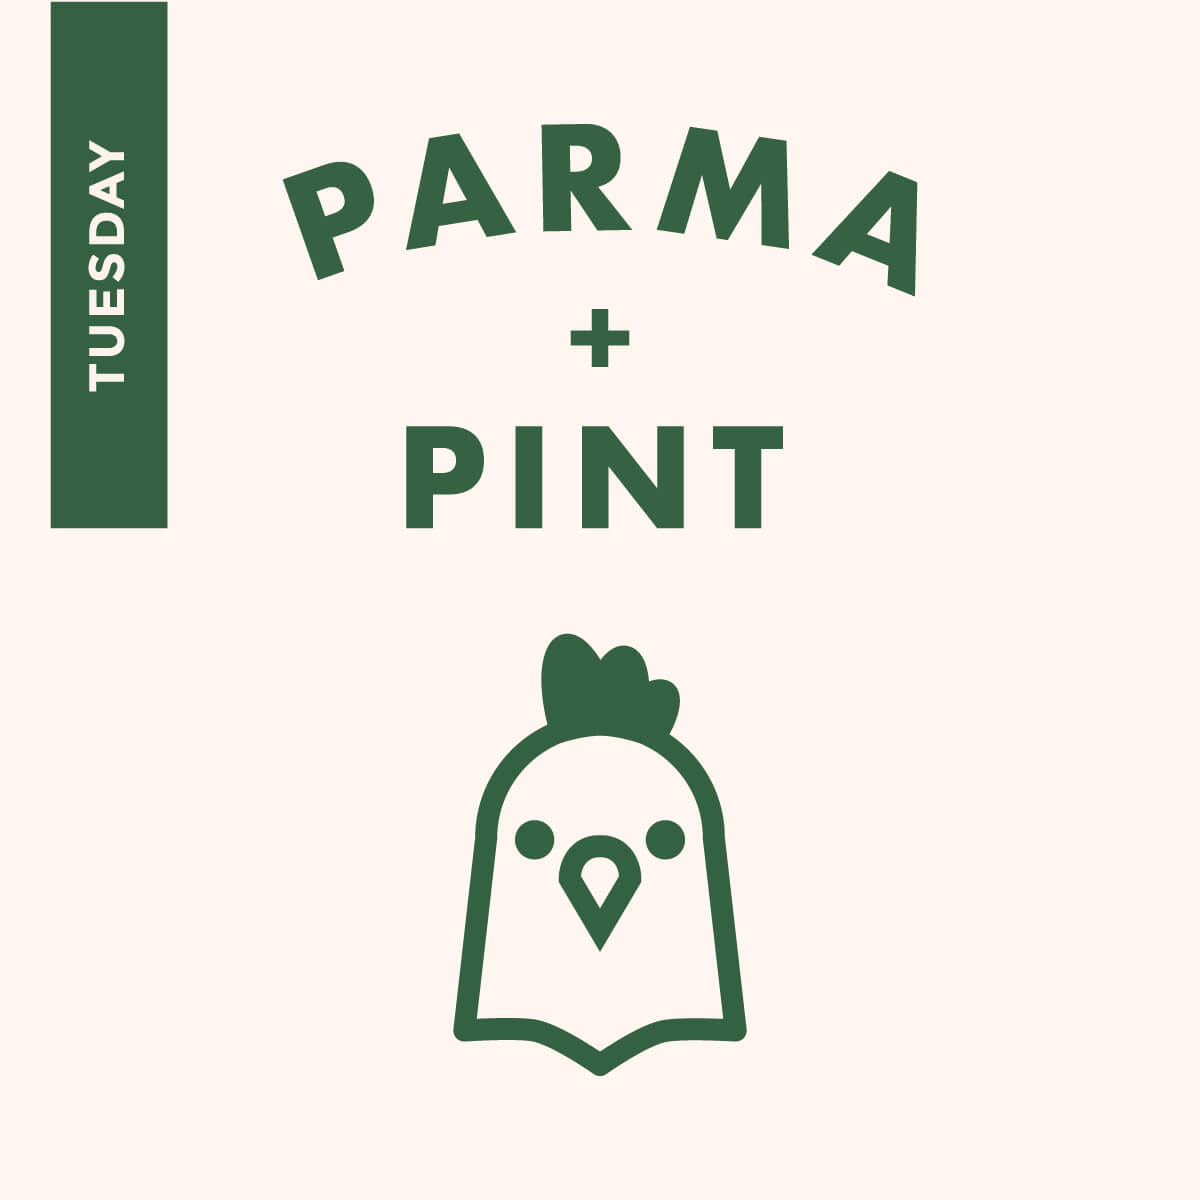 Parma + Pint - image home-slide-3 on https://theleveson.melbourne